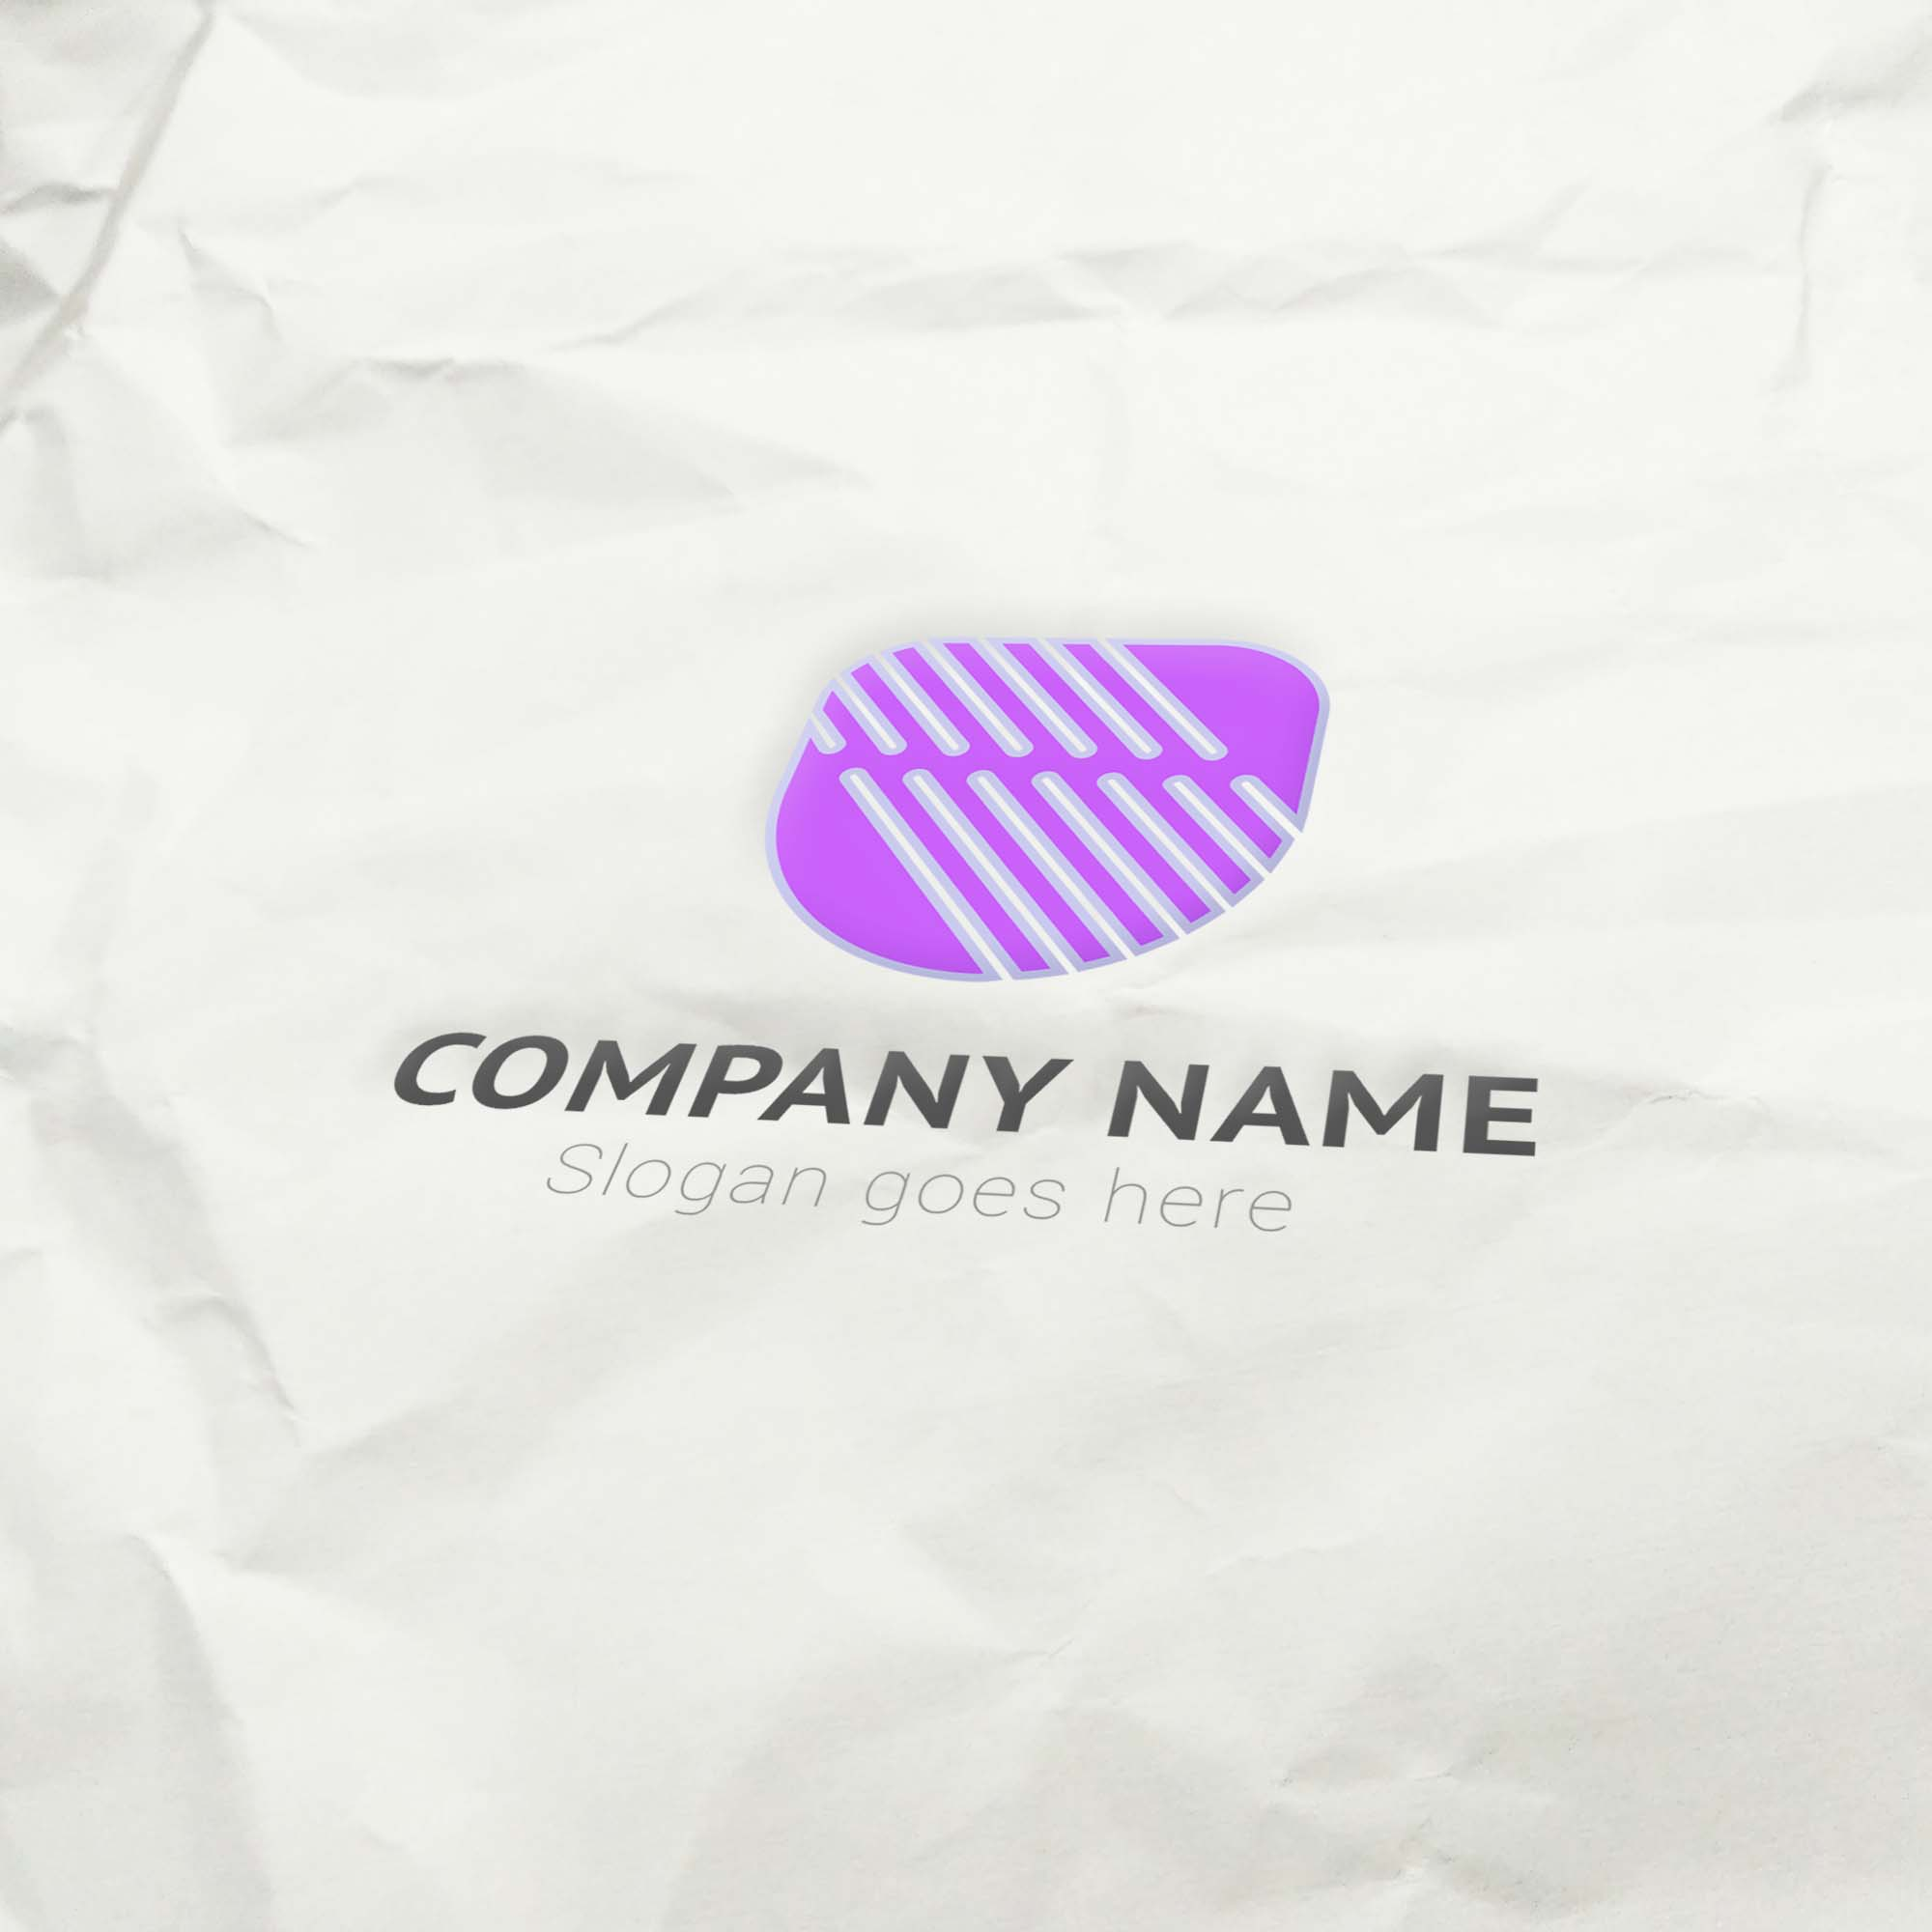 Protection logo template vectors free download wisxi protection logo template vector safety security business free vector wajeb Gallery